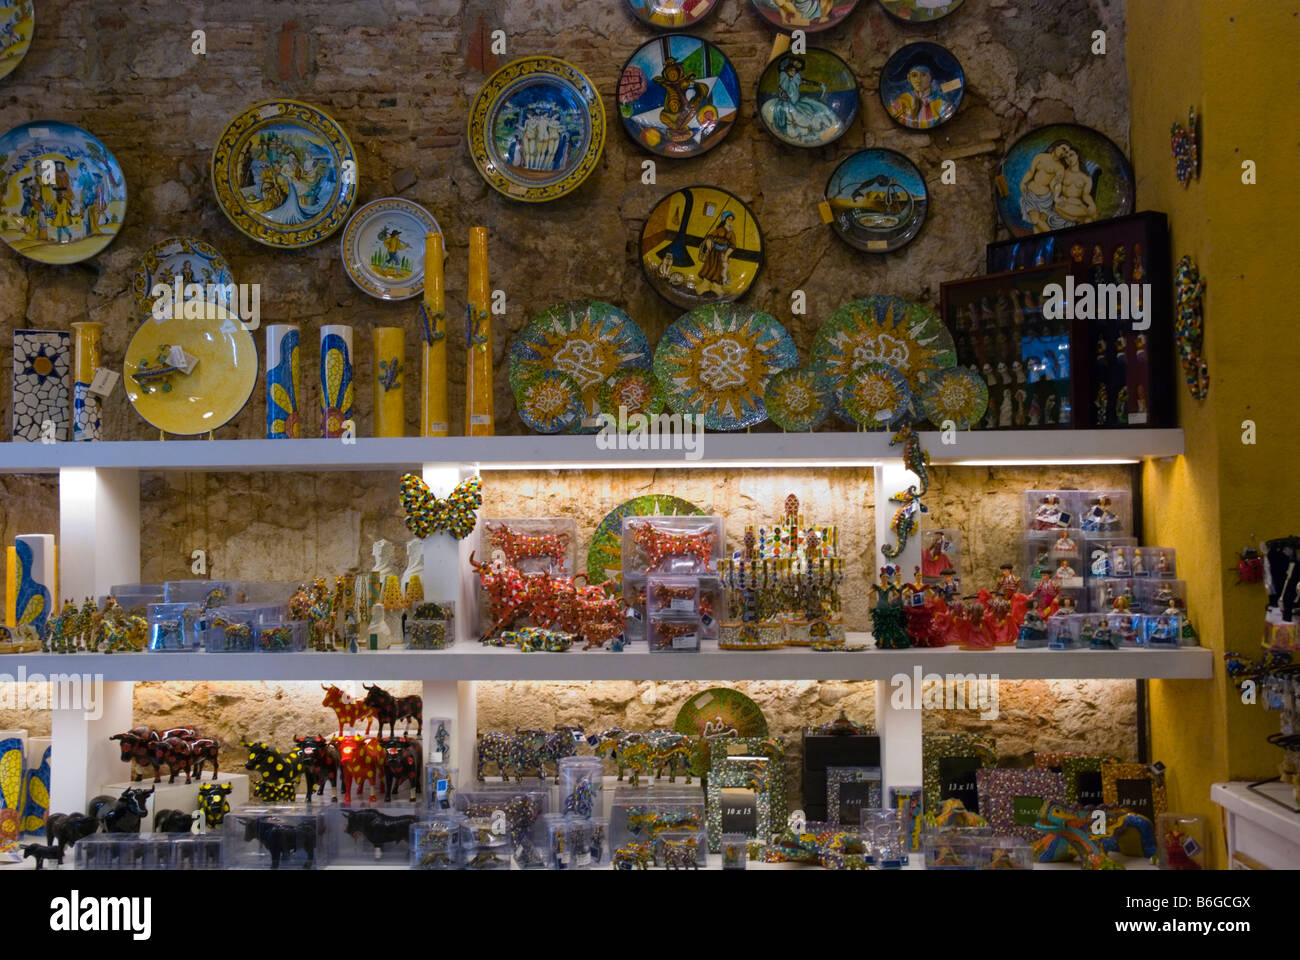 Barcelona Spain Souvenir Gift Stock Photos & Barcelona Spain ...